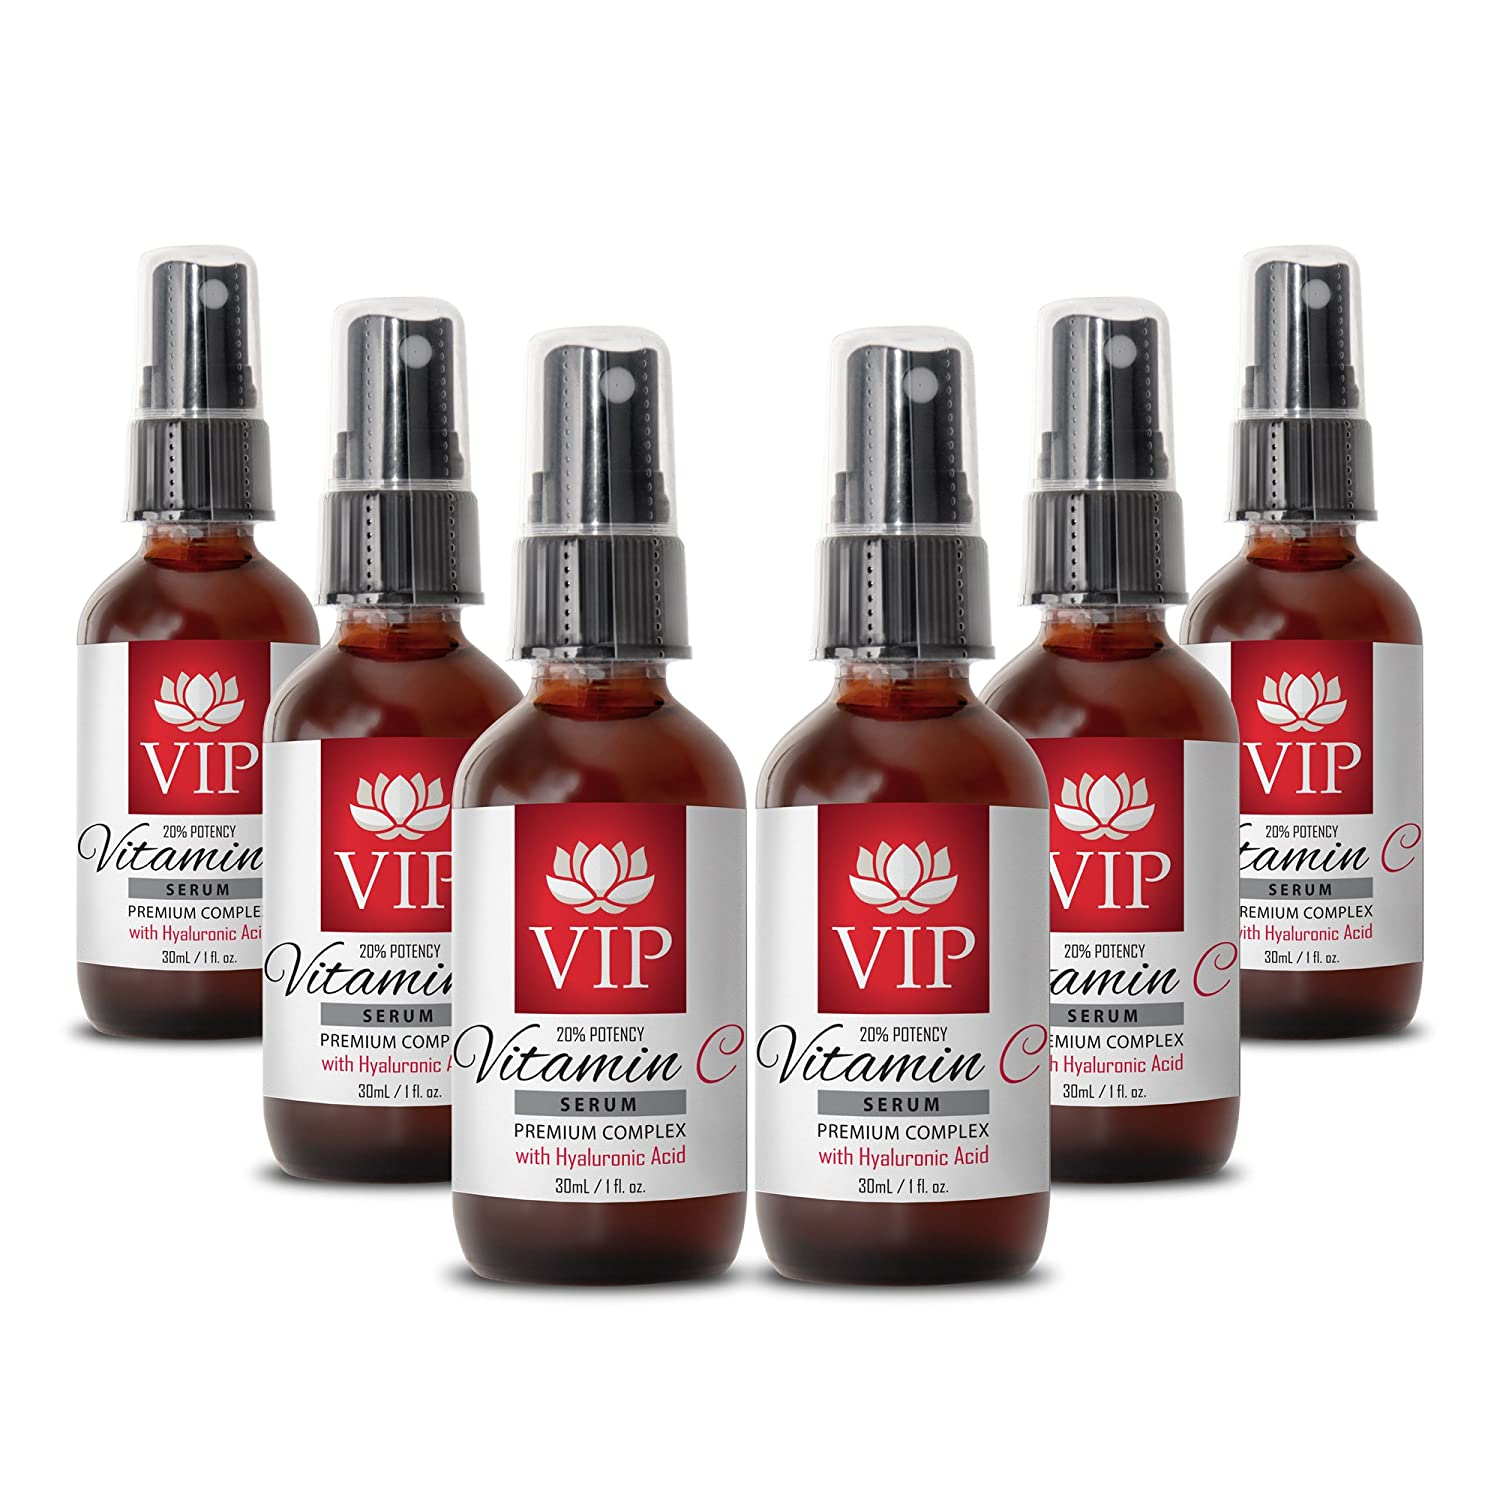 Face serum anti wrinkle - VITAMIN C SERUM PREMIUM COMPLEX With Hyaluronic Acid (20% Potency) - Anti wrinkle serum - 6 Bottles